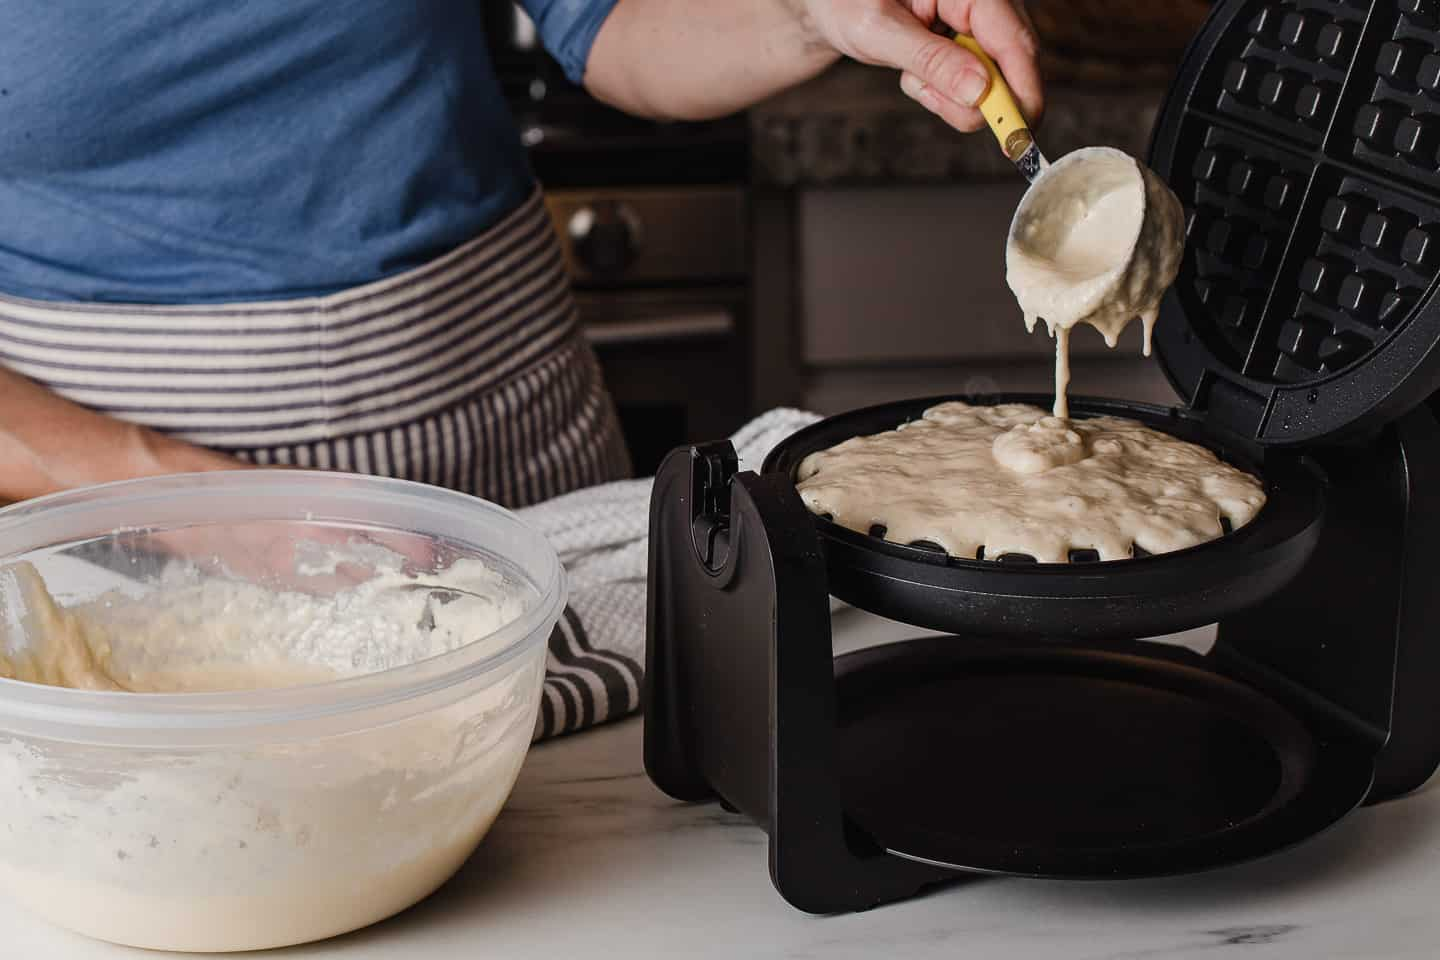 A woman pouring waffle batter onto a hot griddle.